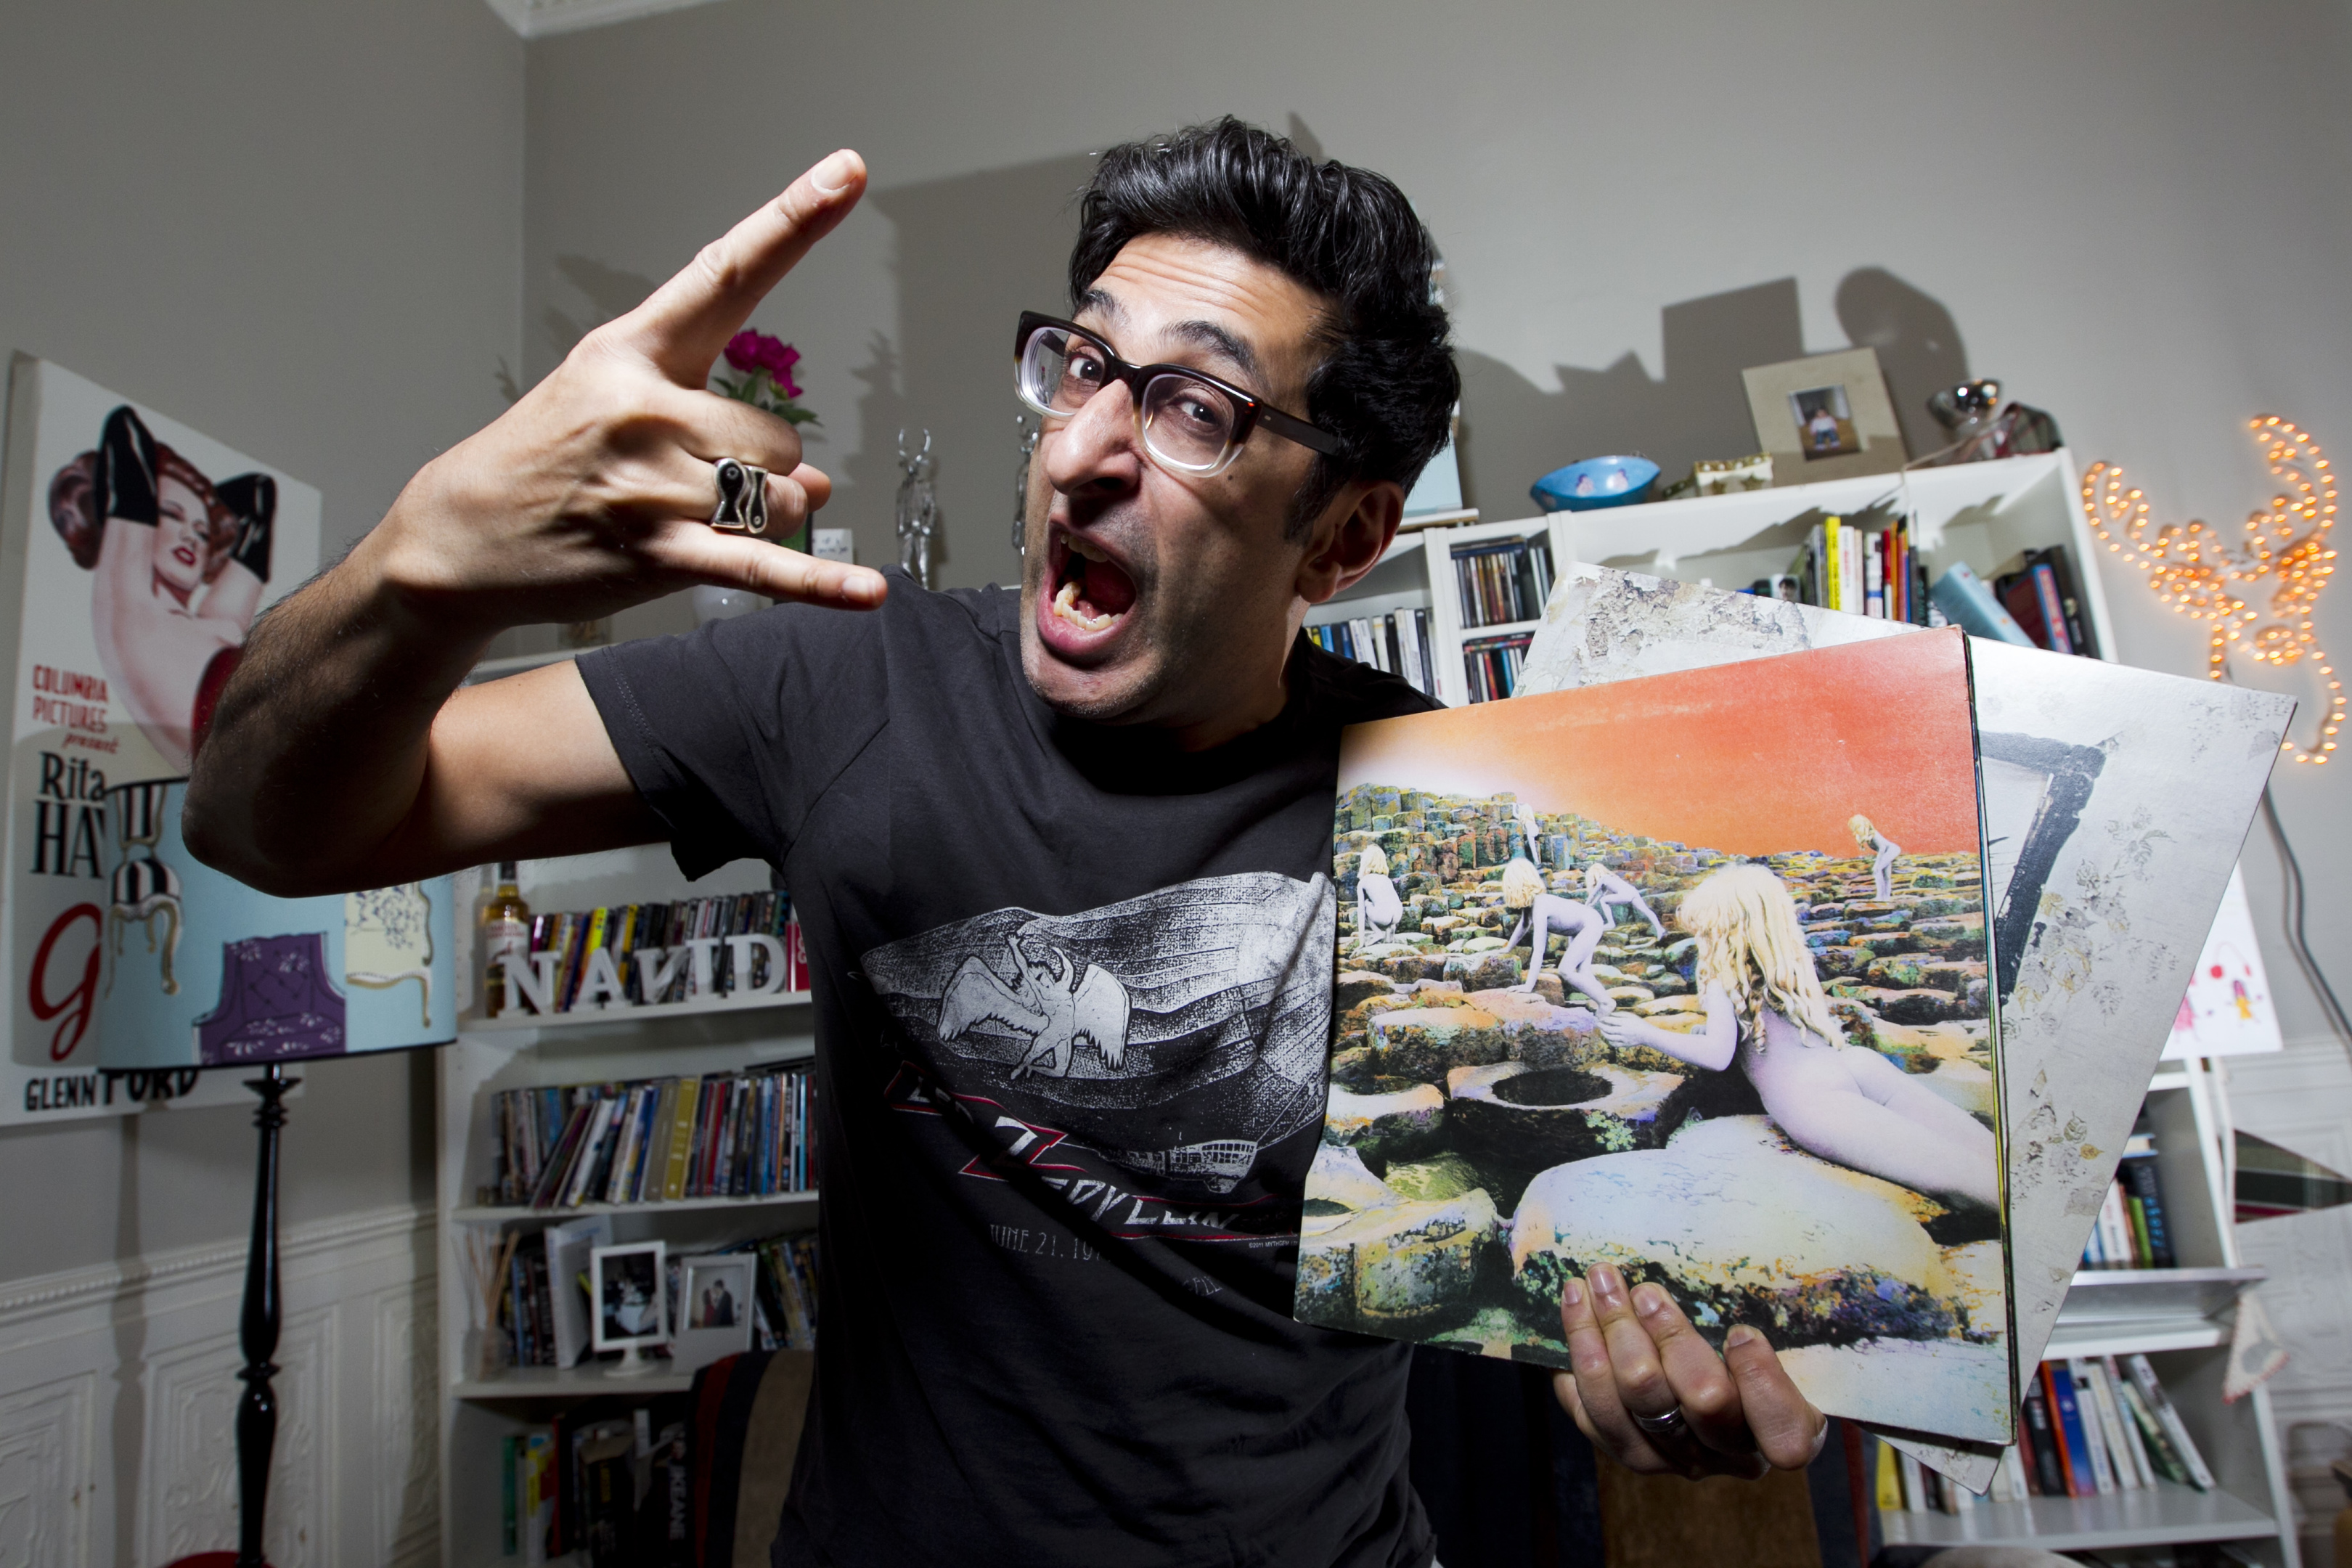 Sanjeev Kohli, with his Led Zeppelin vinyl and t-shirt (Andrew Cawley / DC Thomson)